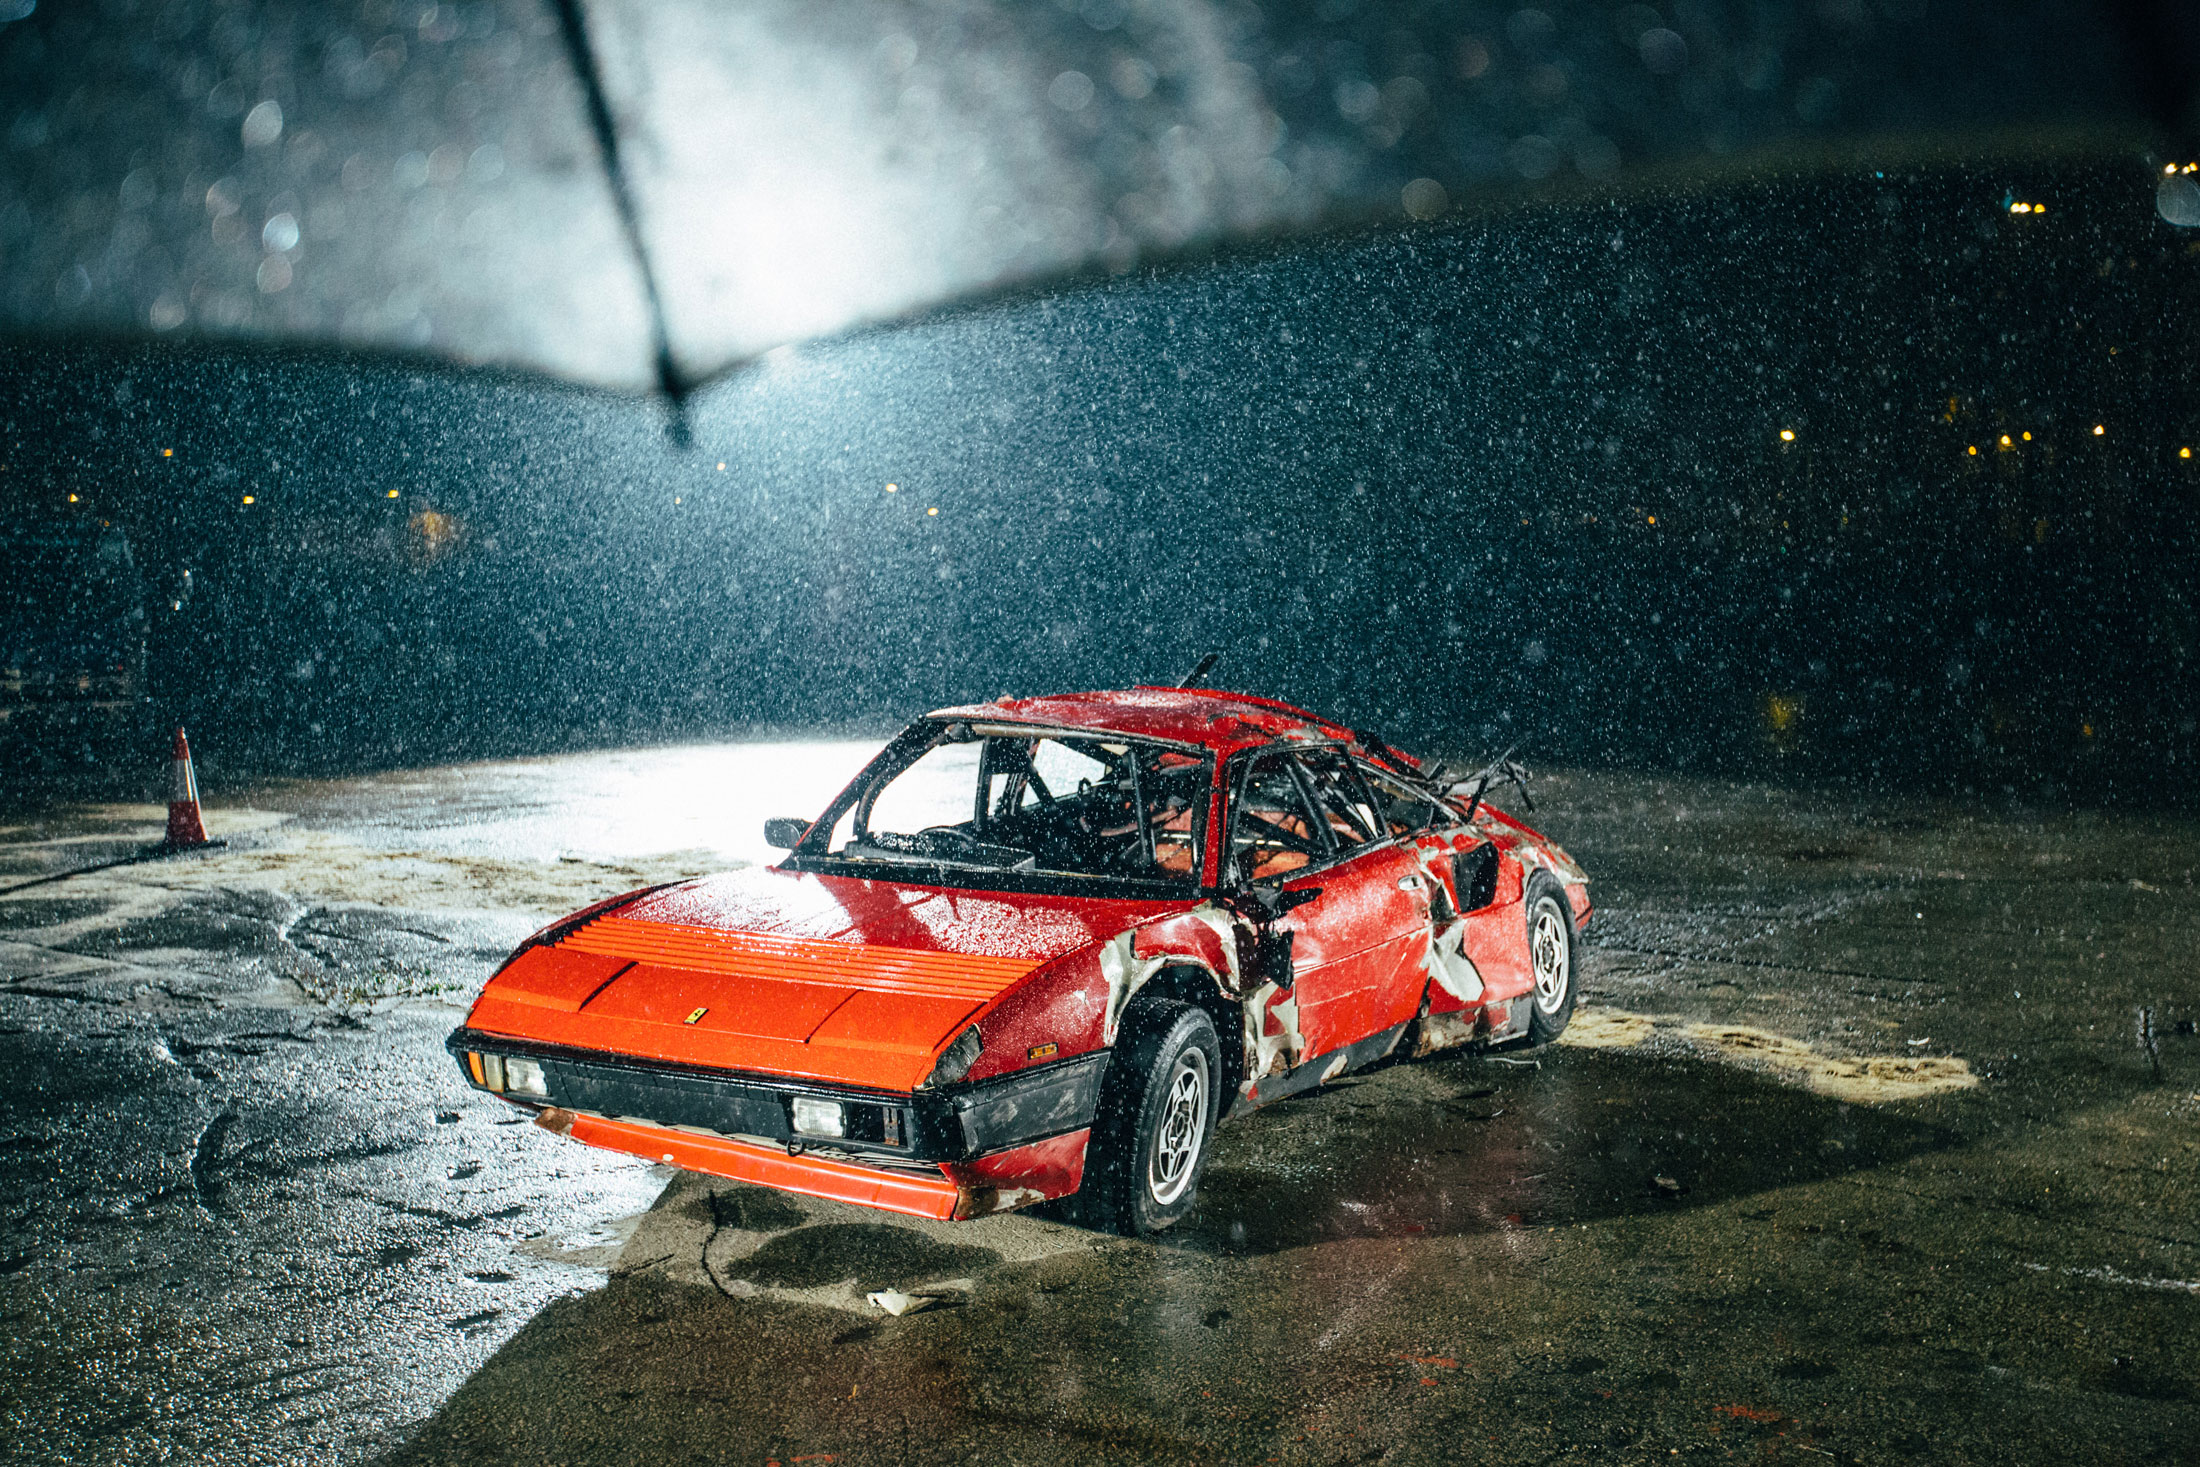 A still from Burch's Ferrari crash film. (Photo: Courtesy Simon Burch)